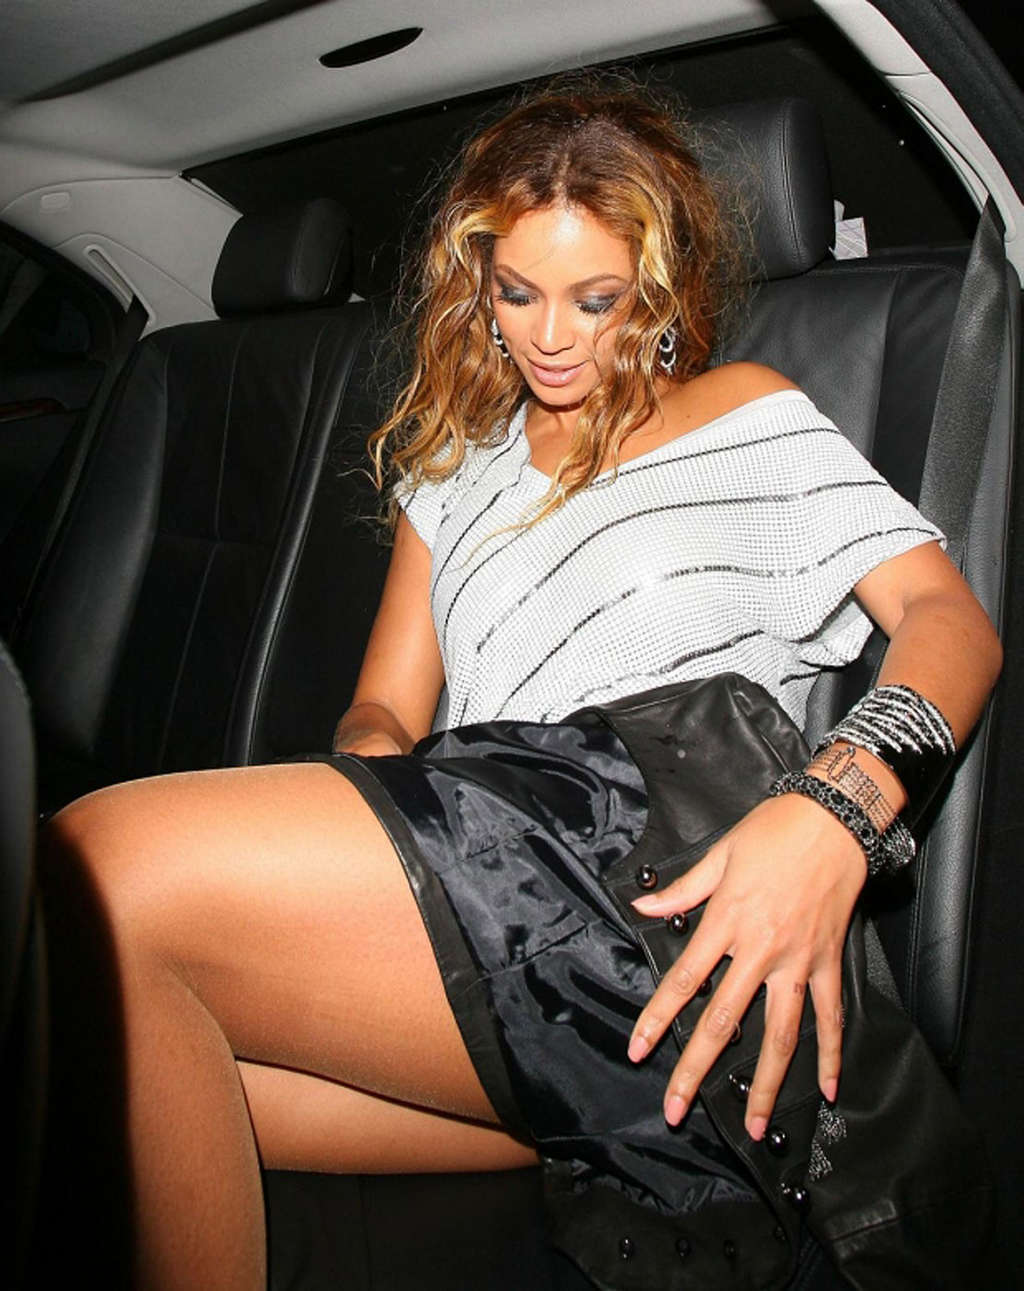 Vagina her beyonce flashes knowles